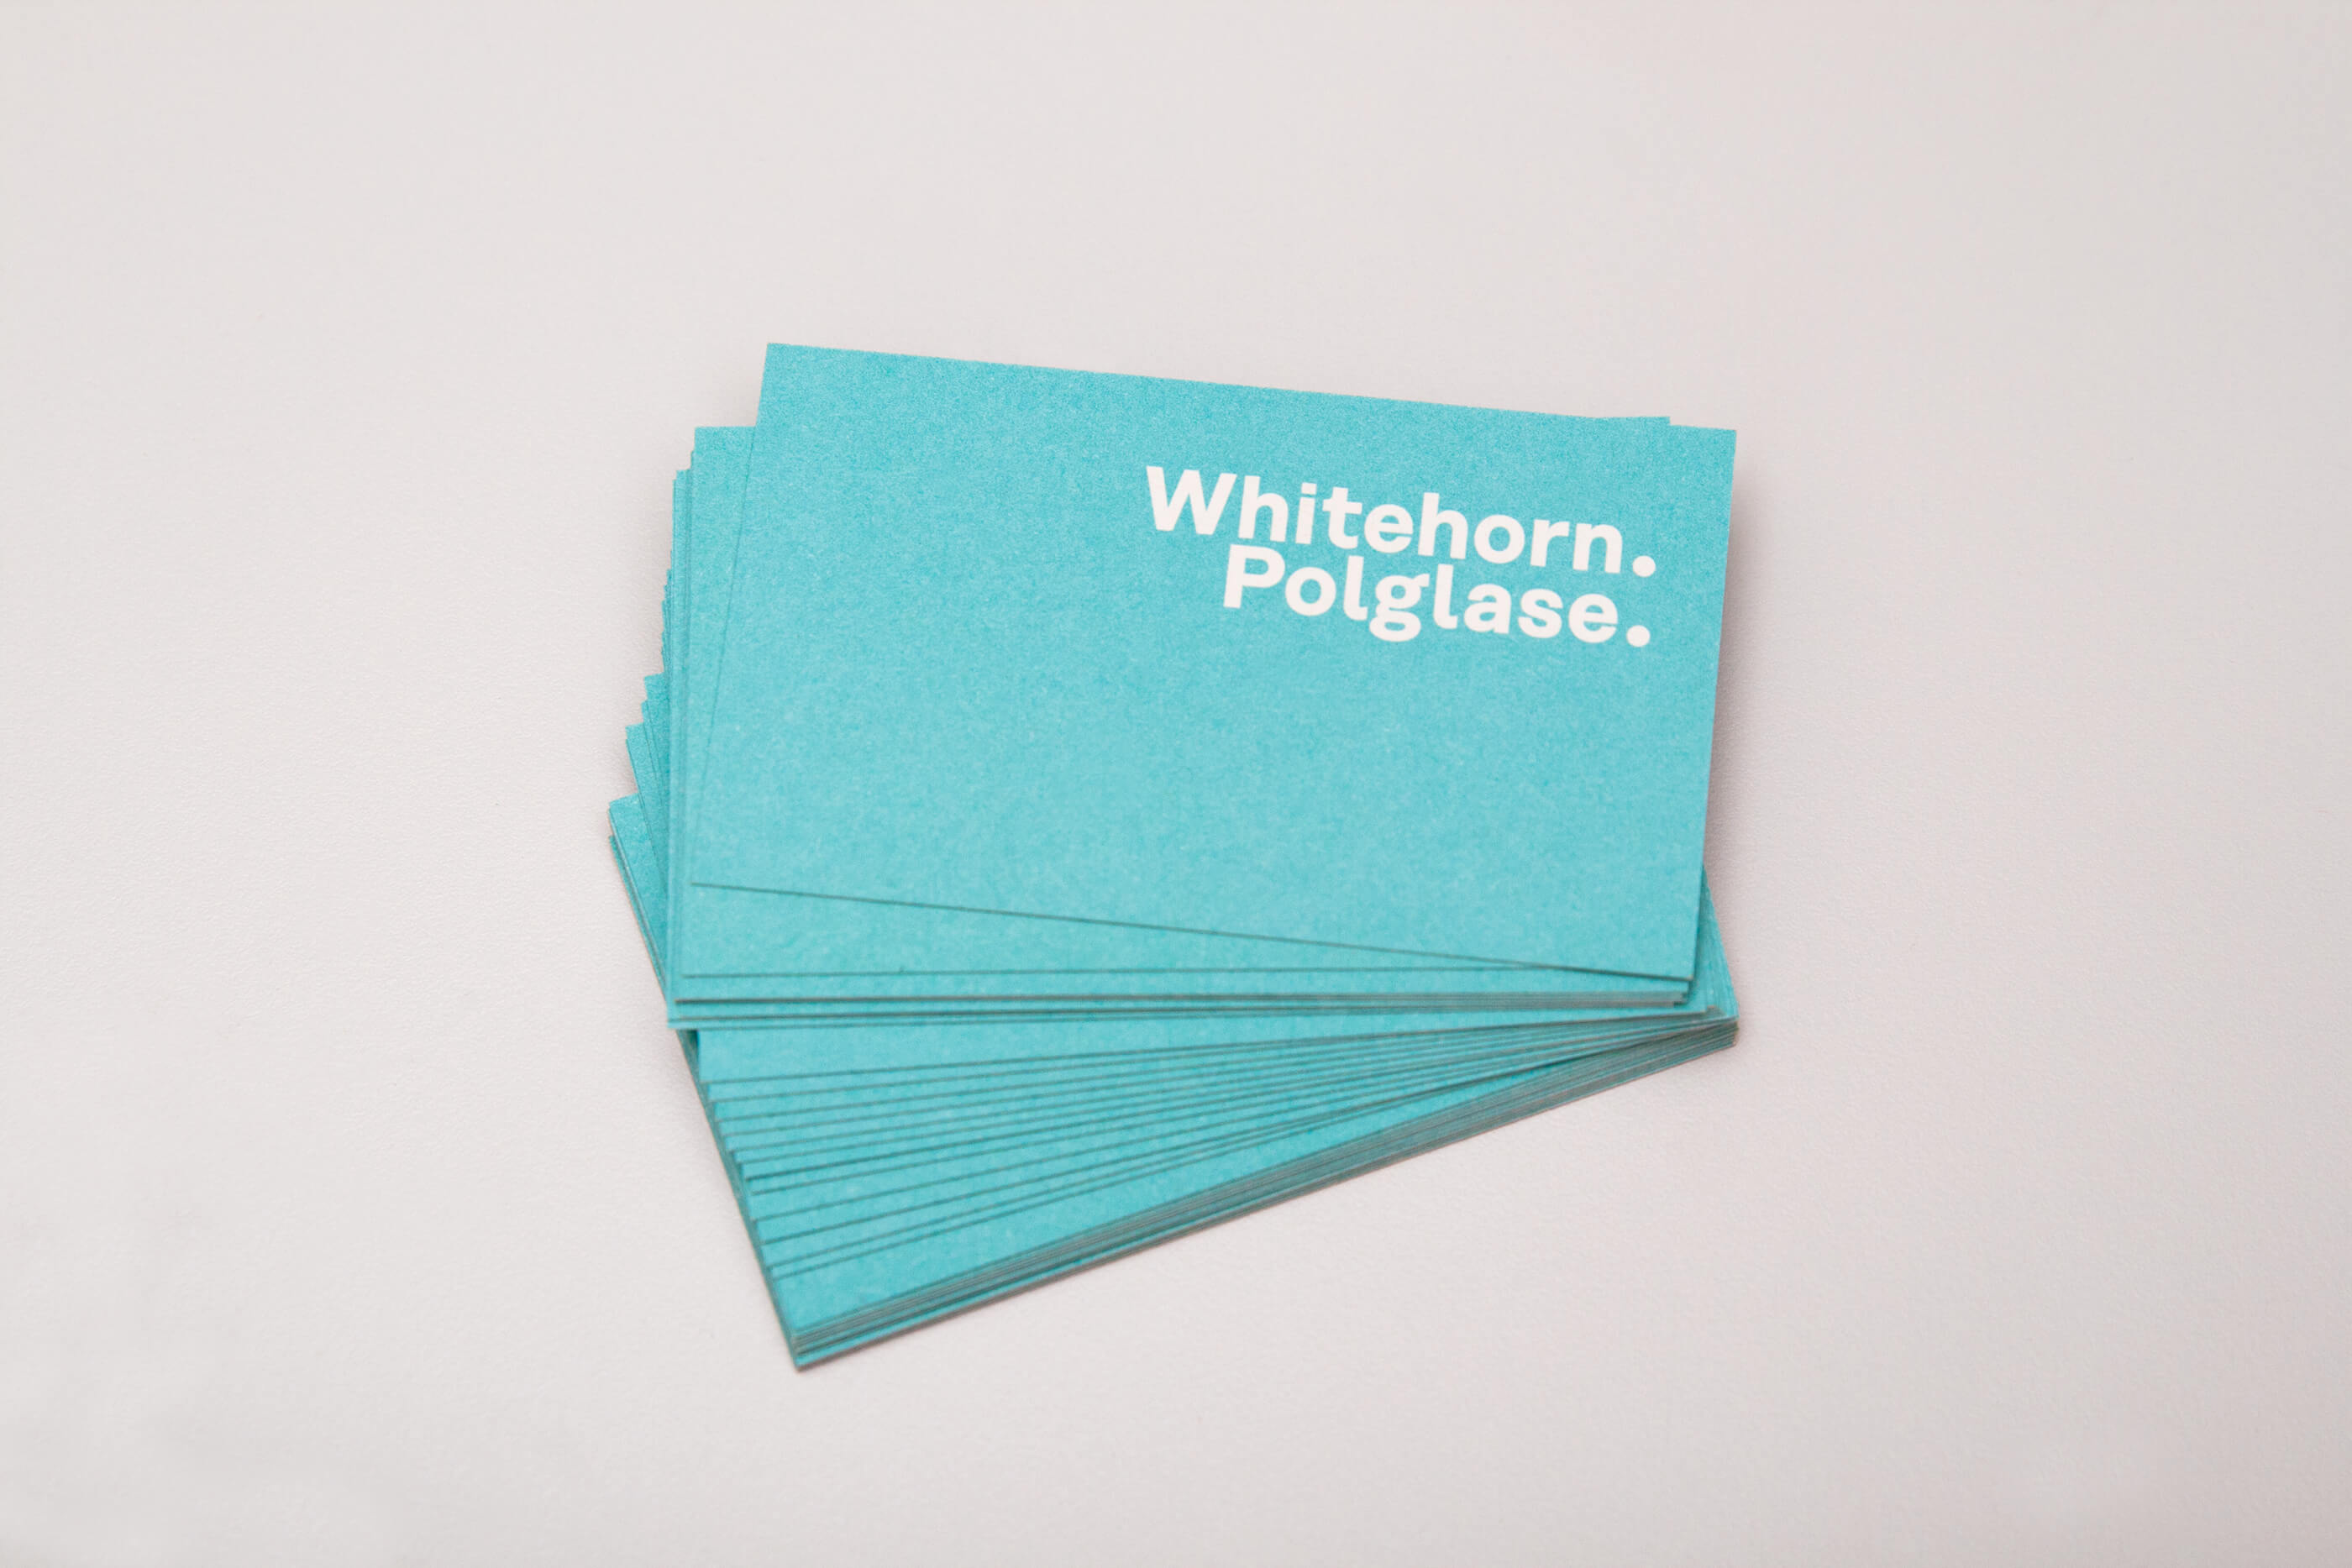 whitehorn_polglase_business_card_pile